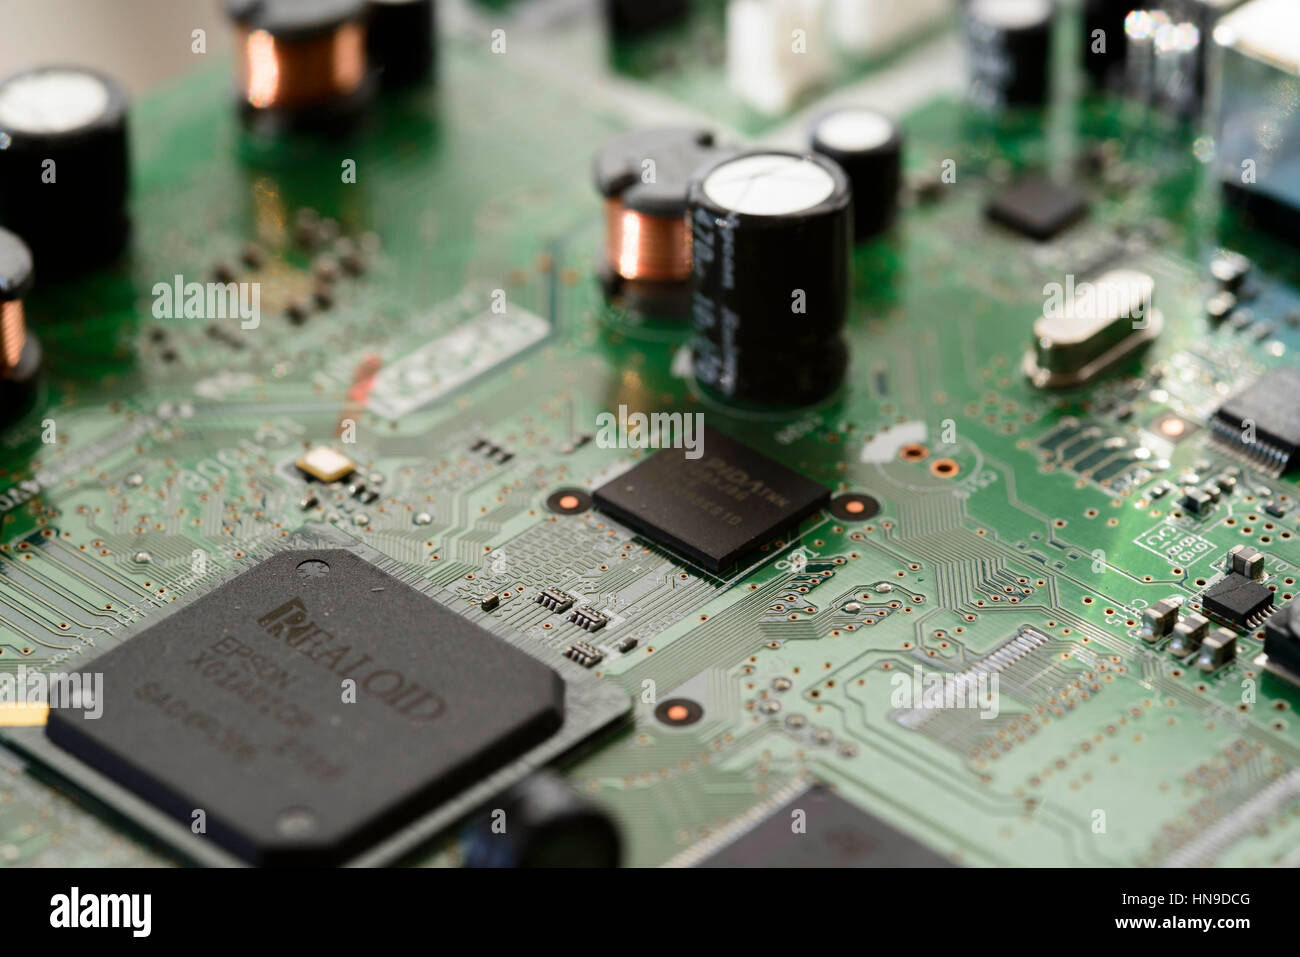 Close-up of electronic circit board Photo Stock